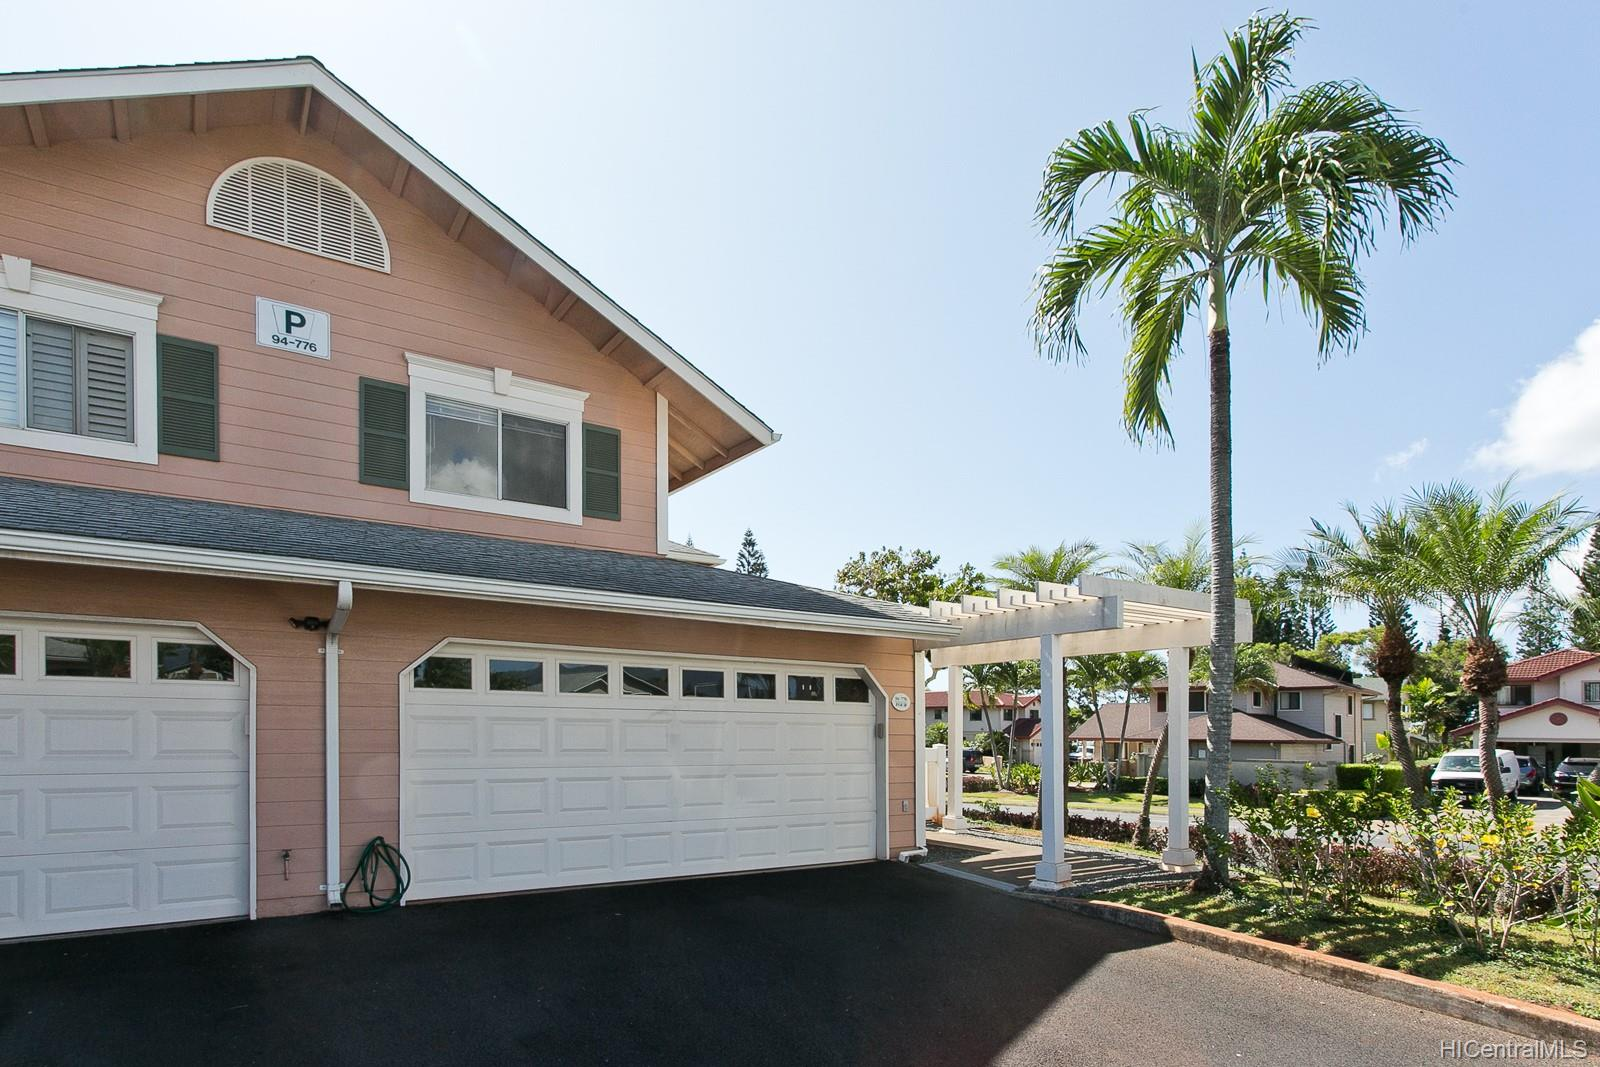 Waikele Community townhouse # P4, Waipahu, Hawaii - photo 1 of 16